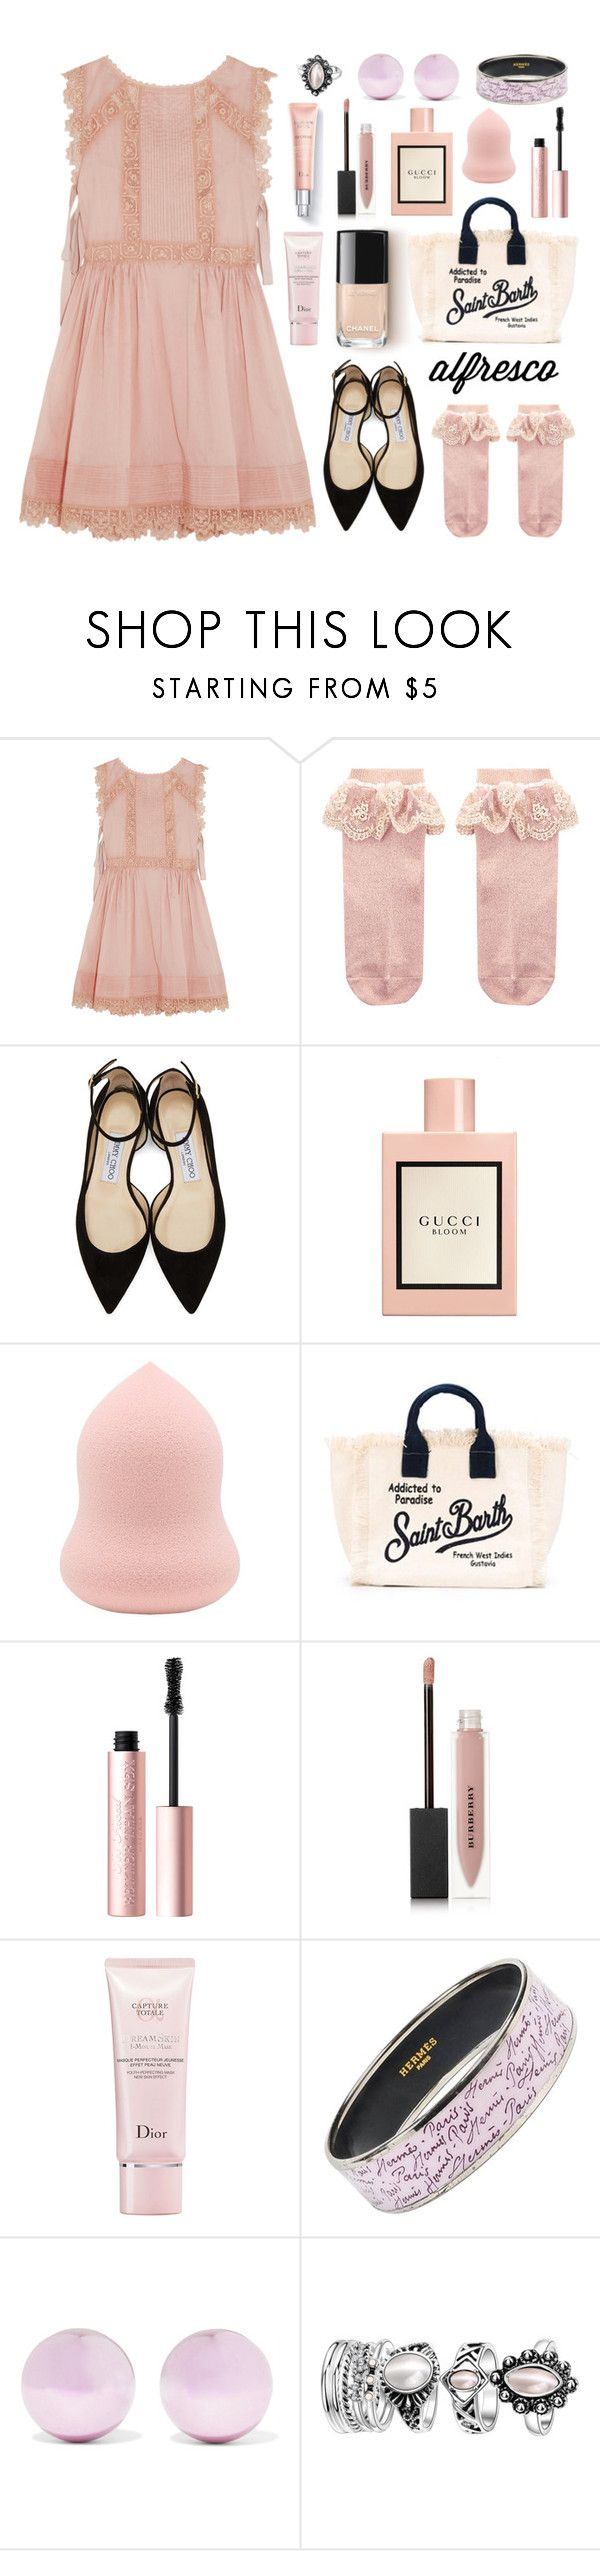 """""""#alfrescodining"""" by lillyluvs ❤ liked on Polyvore featuring RED Valentino, Monsoon, Jimmy Choo, Gucci, MC2, Too Faced Cosmetics, Burberry, Christian Dior, Hermès and J.W. Anderson"""